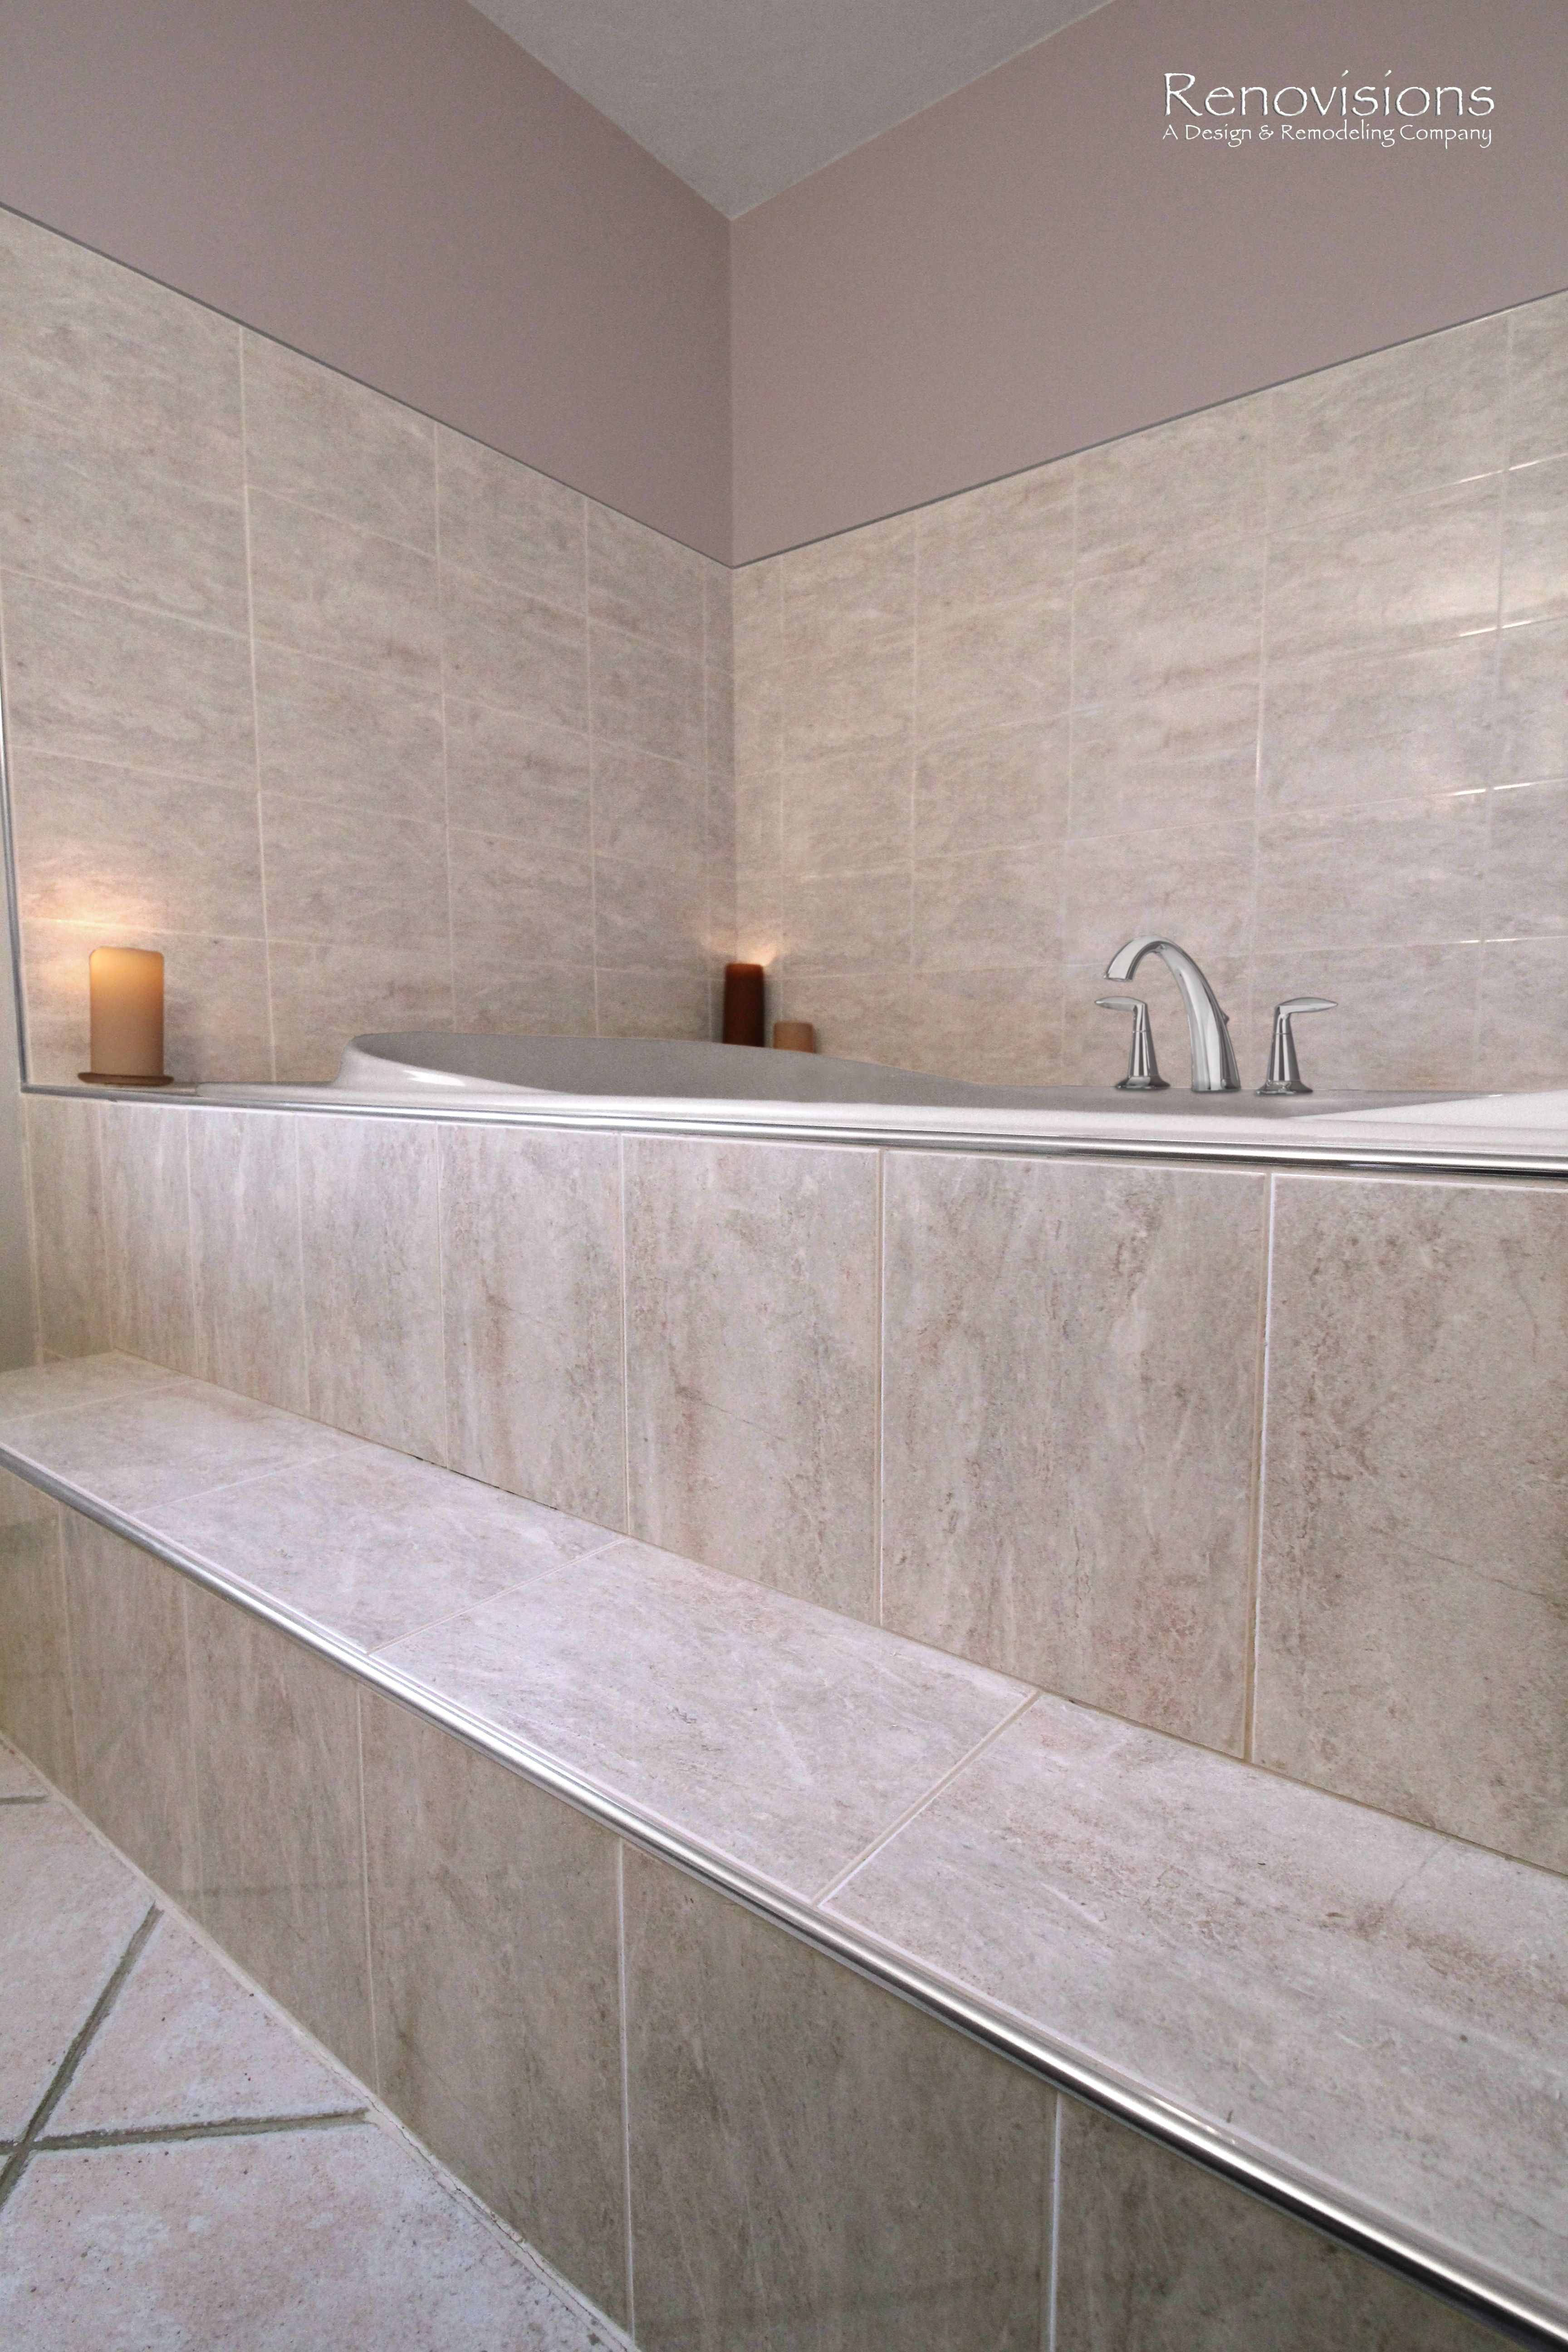 Bathroom Remodel By Renovisions Contemporary Style Jacuzzi Tub